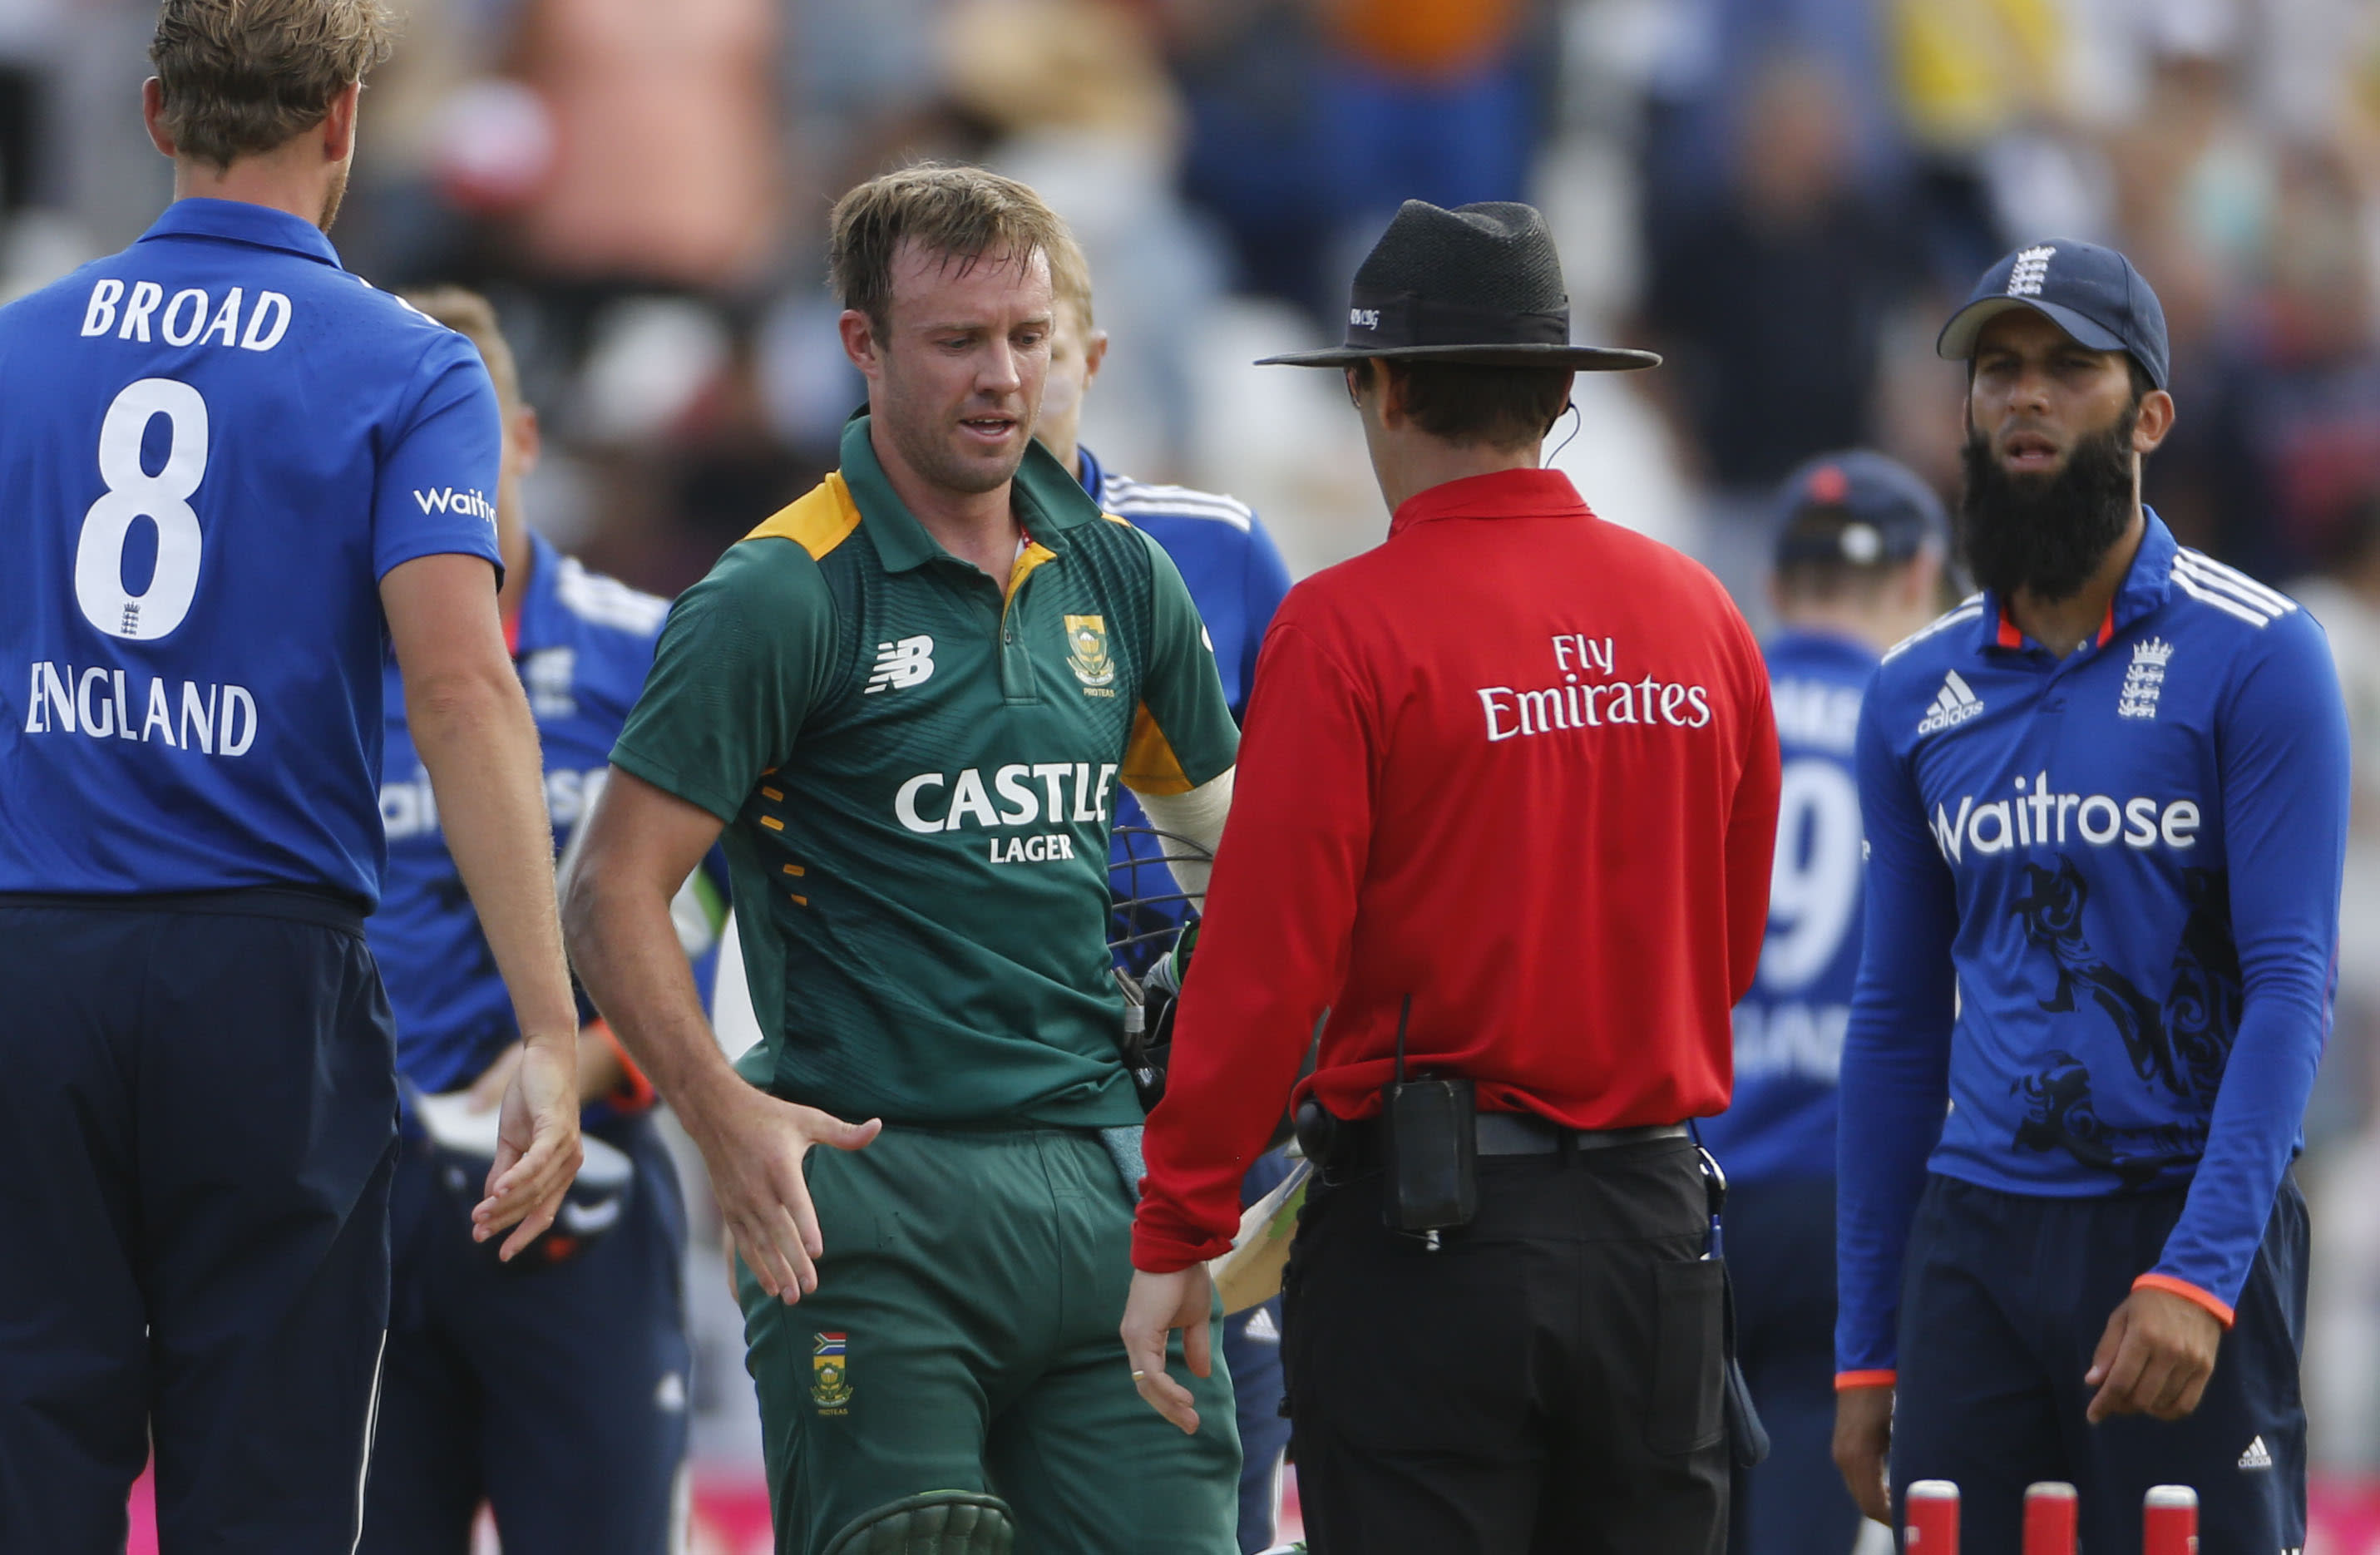 SAfrica back from 2-0 down to win ODI series over England